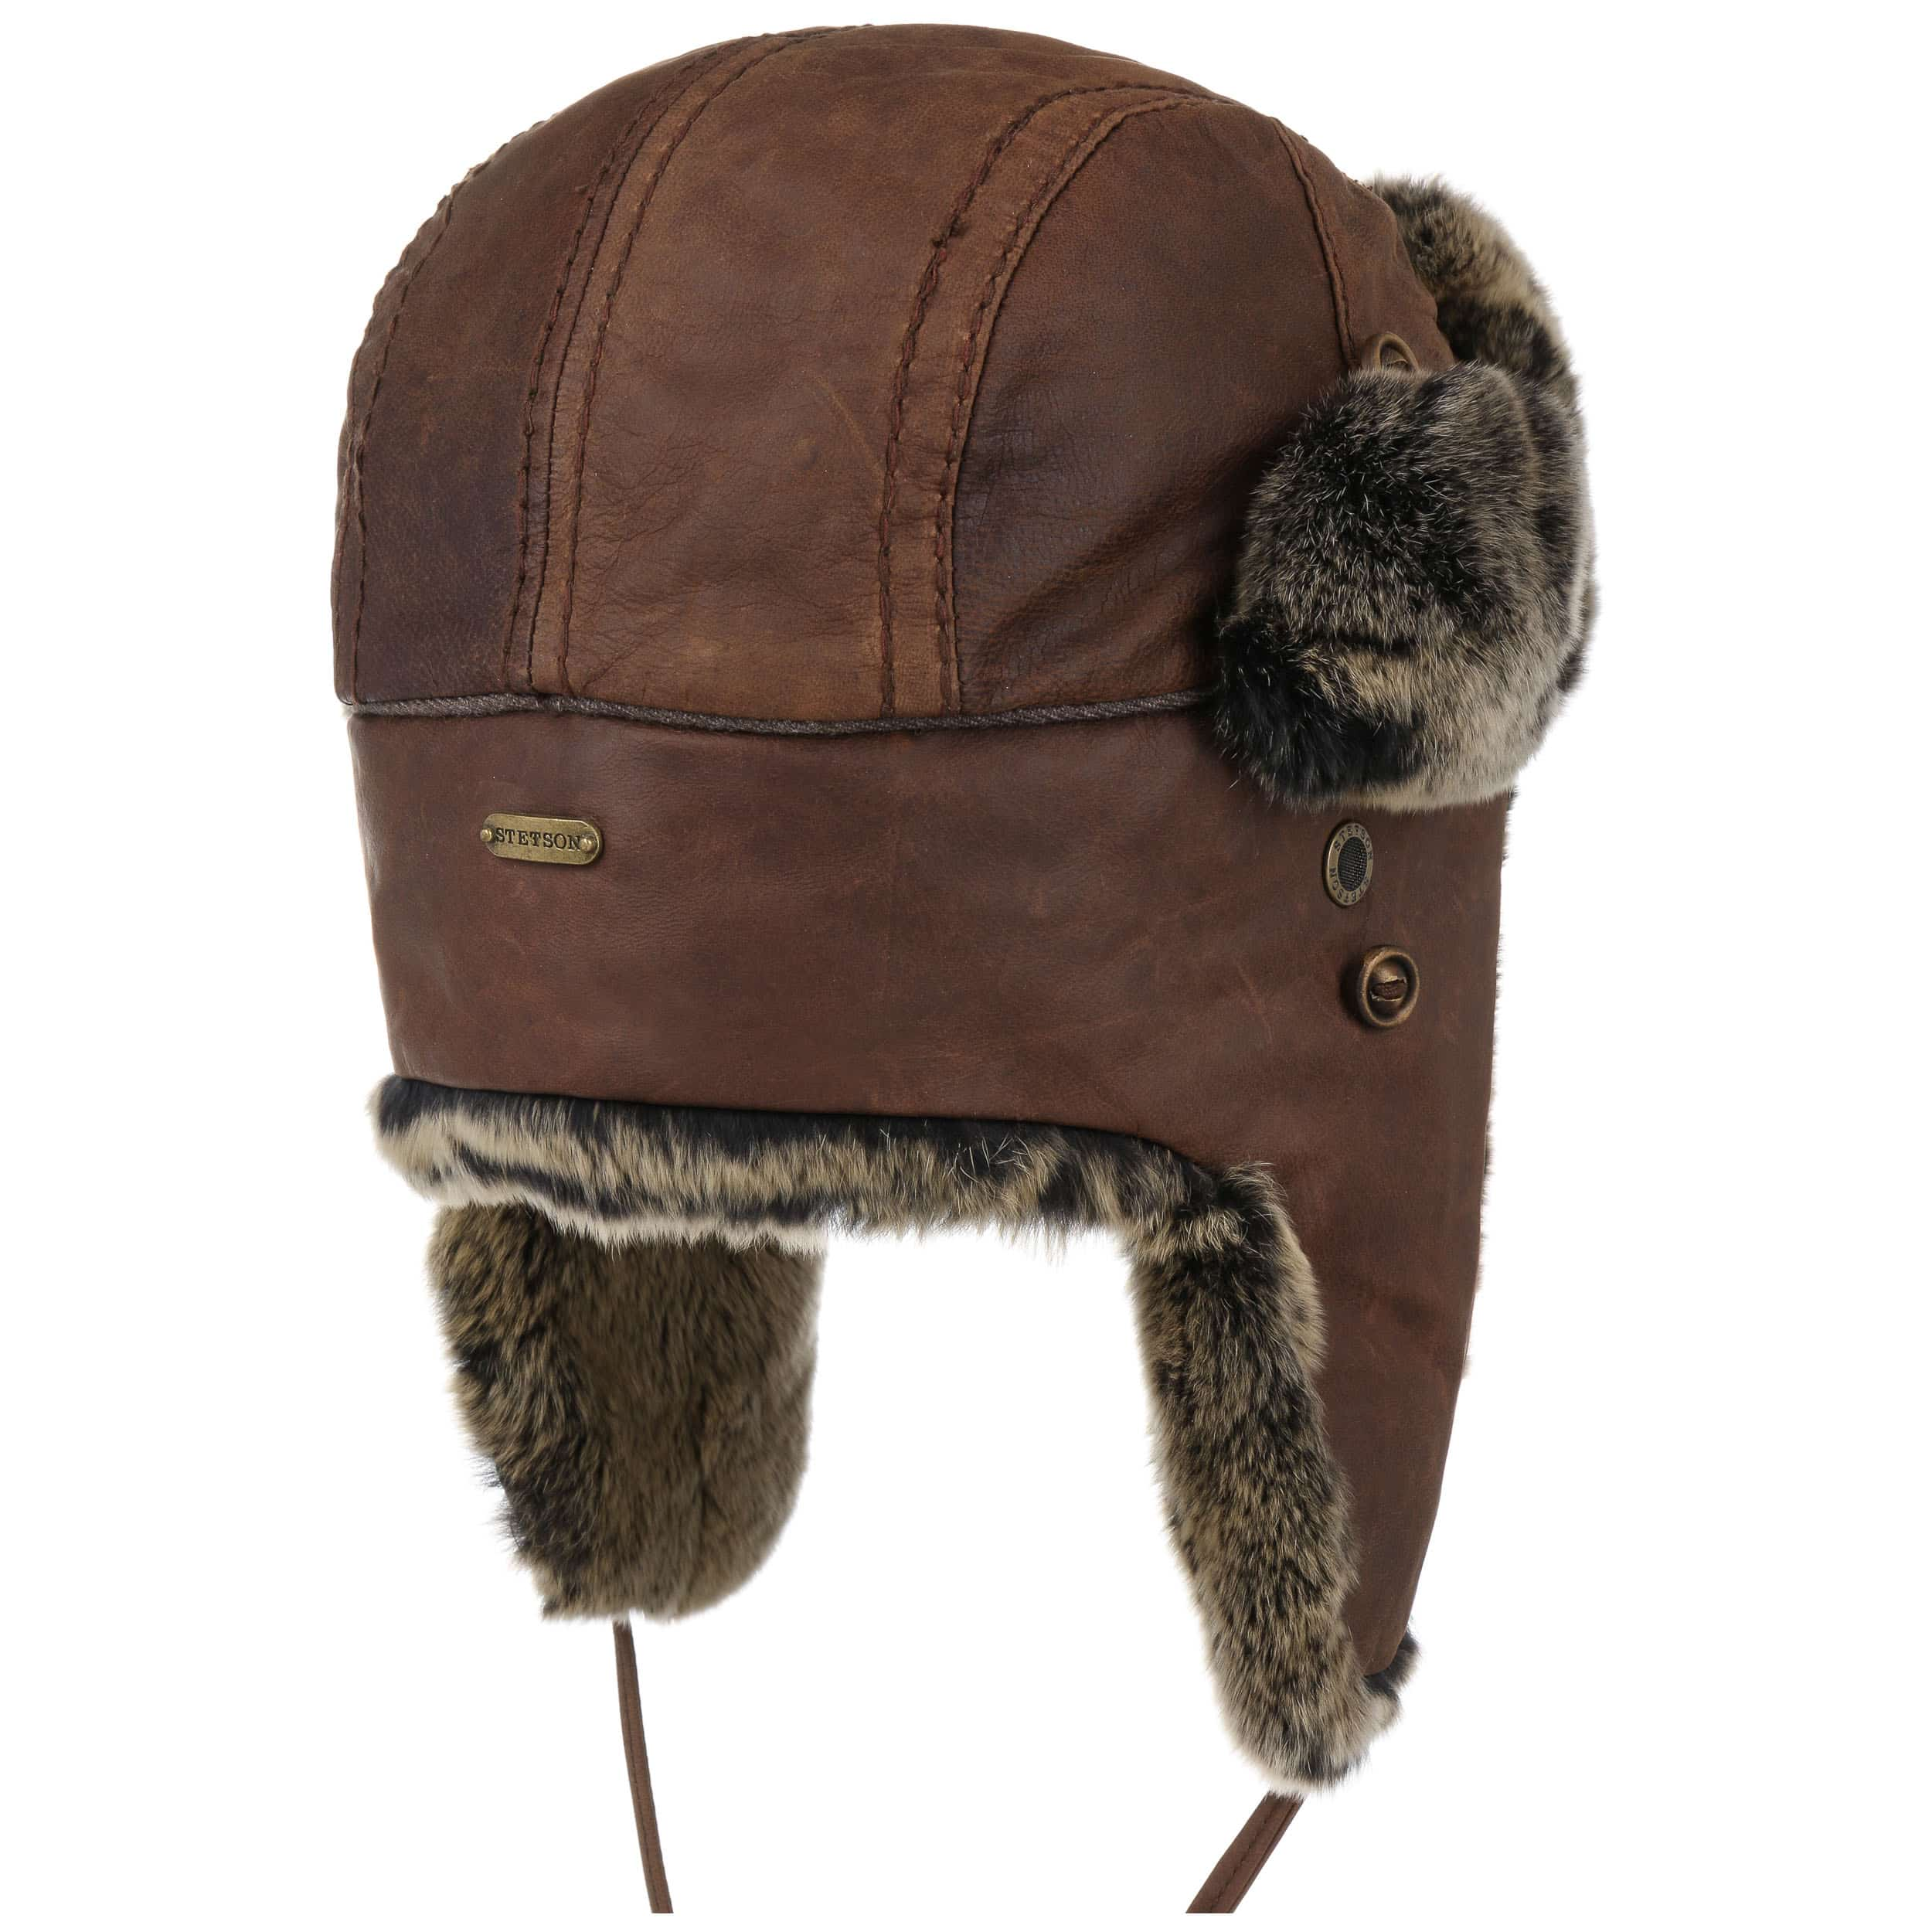 ... Shiprock Lapeer Aviator Hat by Stetson - brown 3 ... f10b79a1077